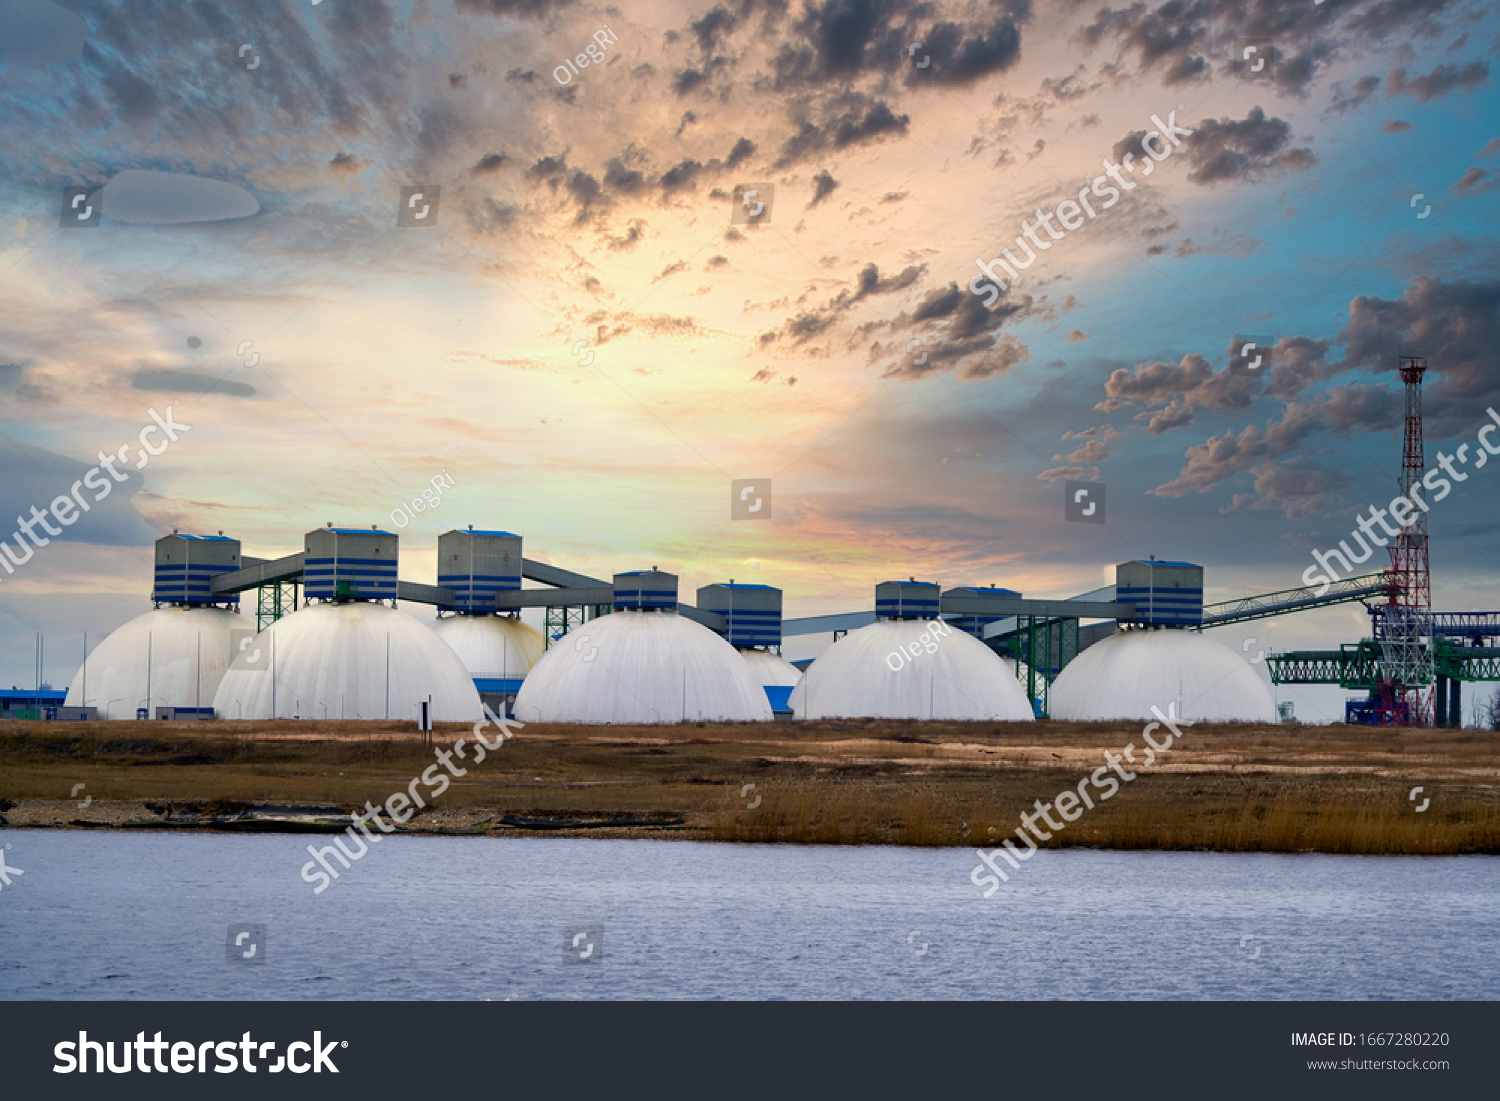 Natural Gas Tank in the morning. #1667280220